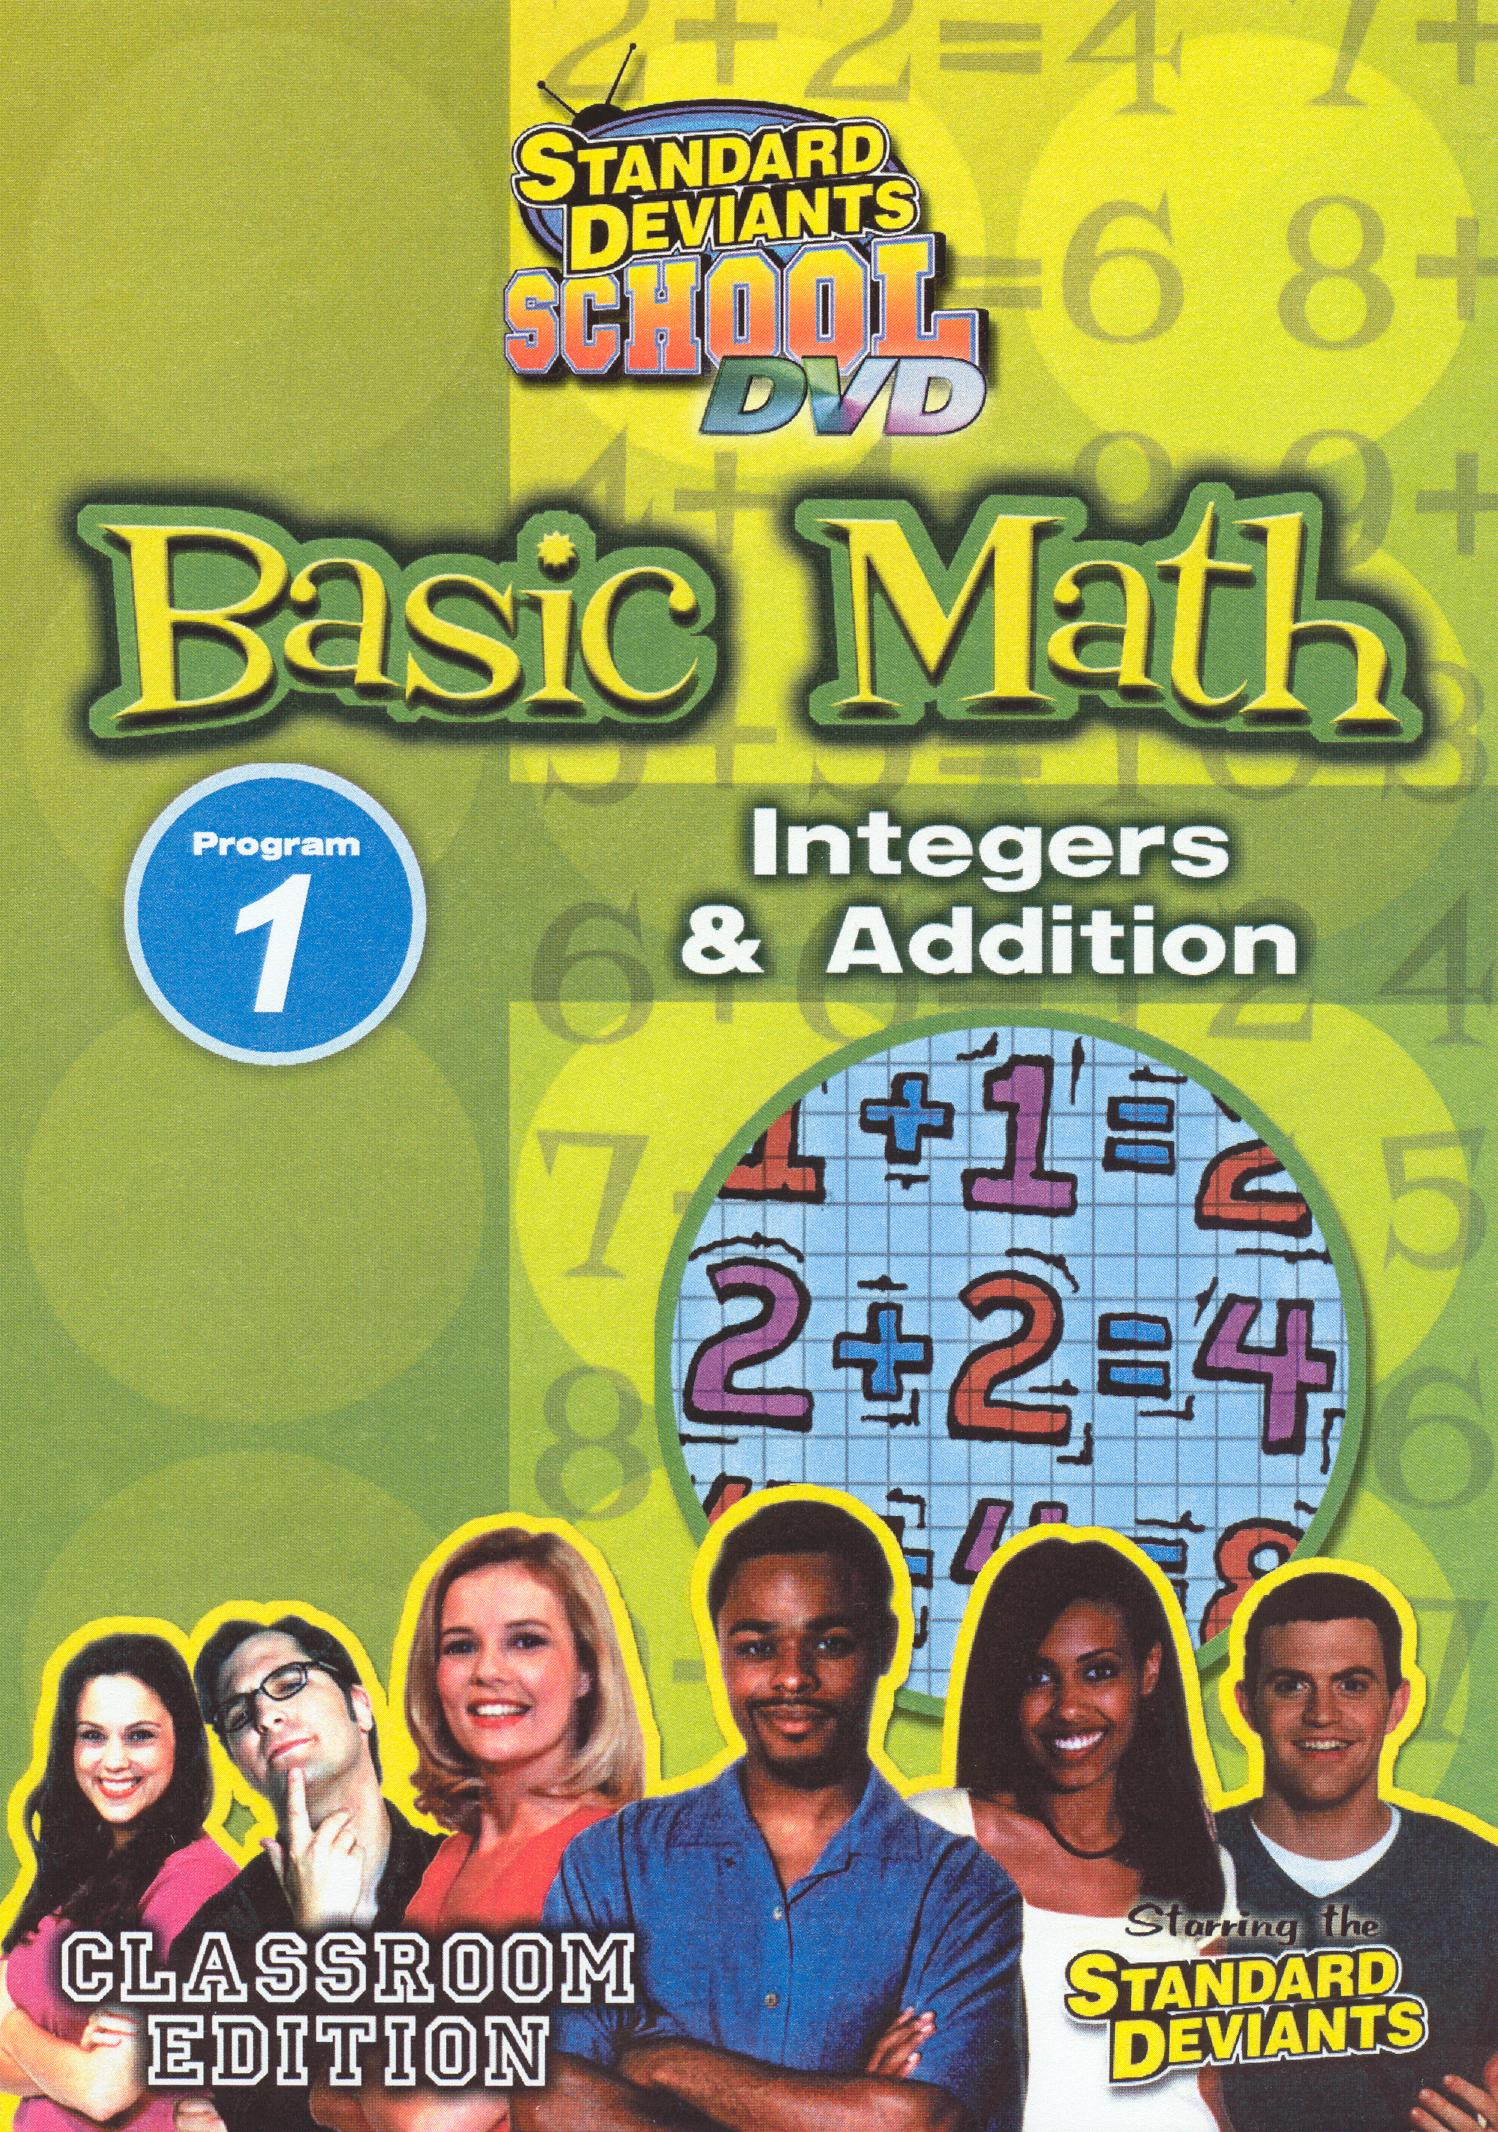 Standard Deviants School: Basic Math, Program 1